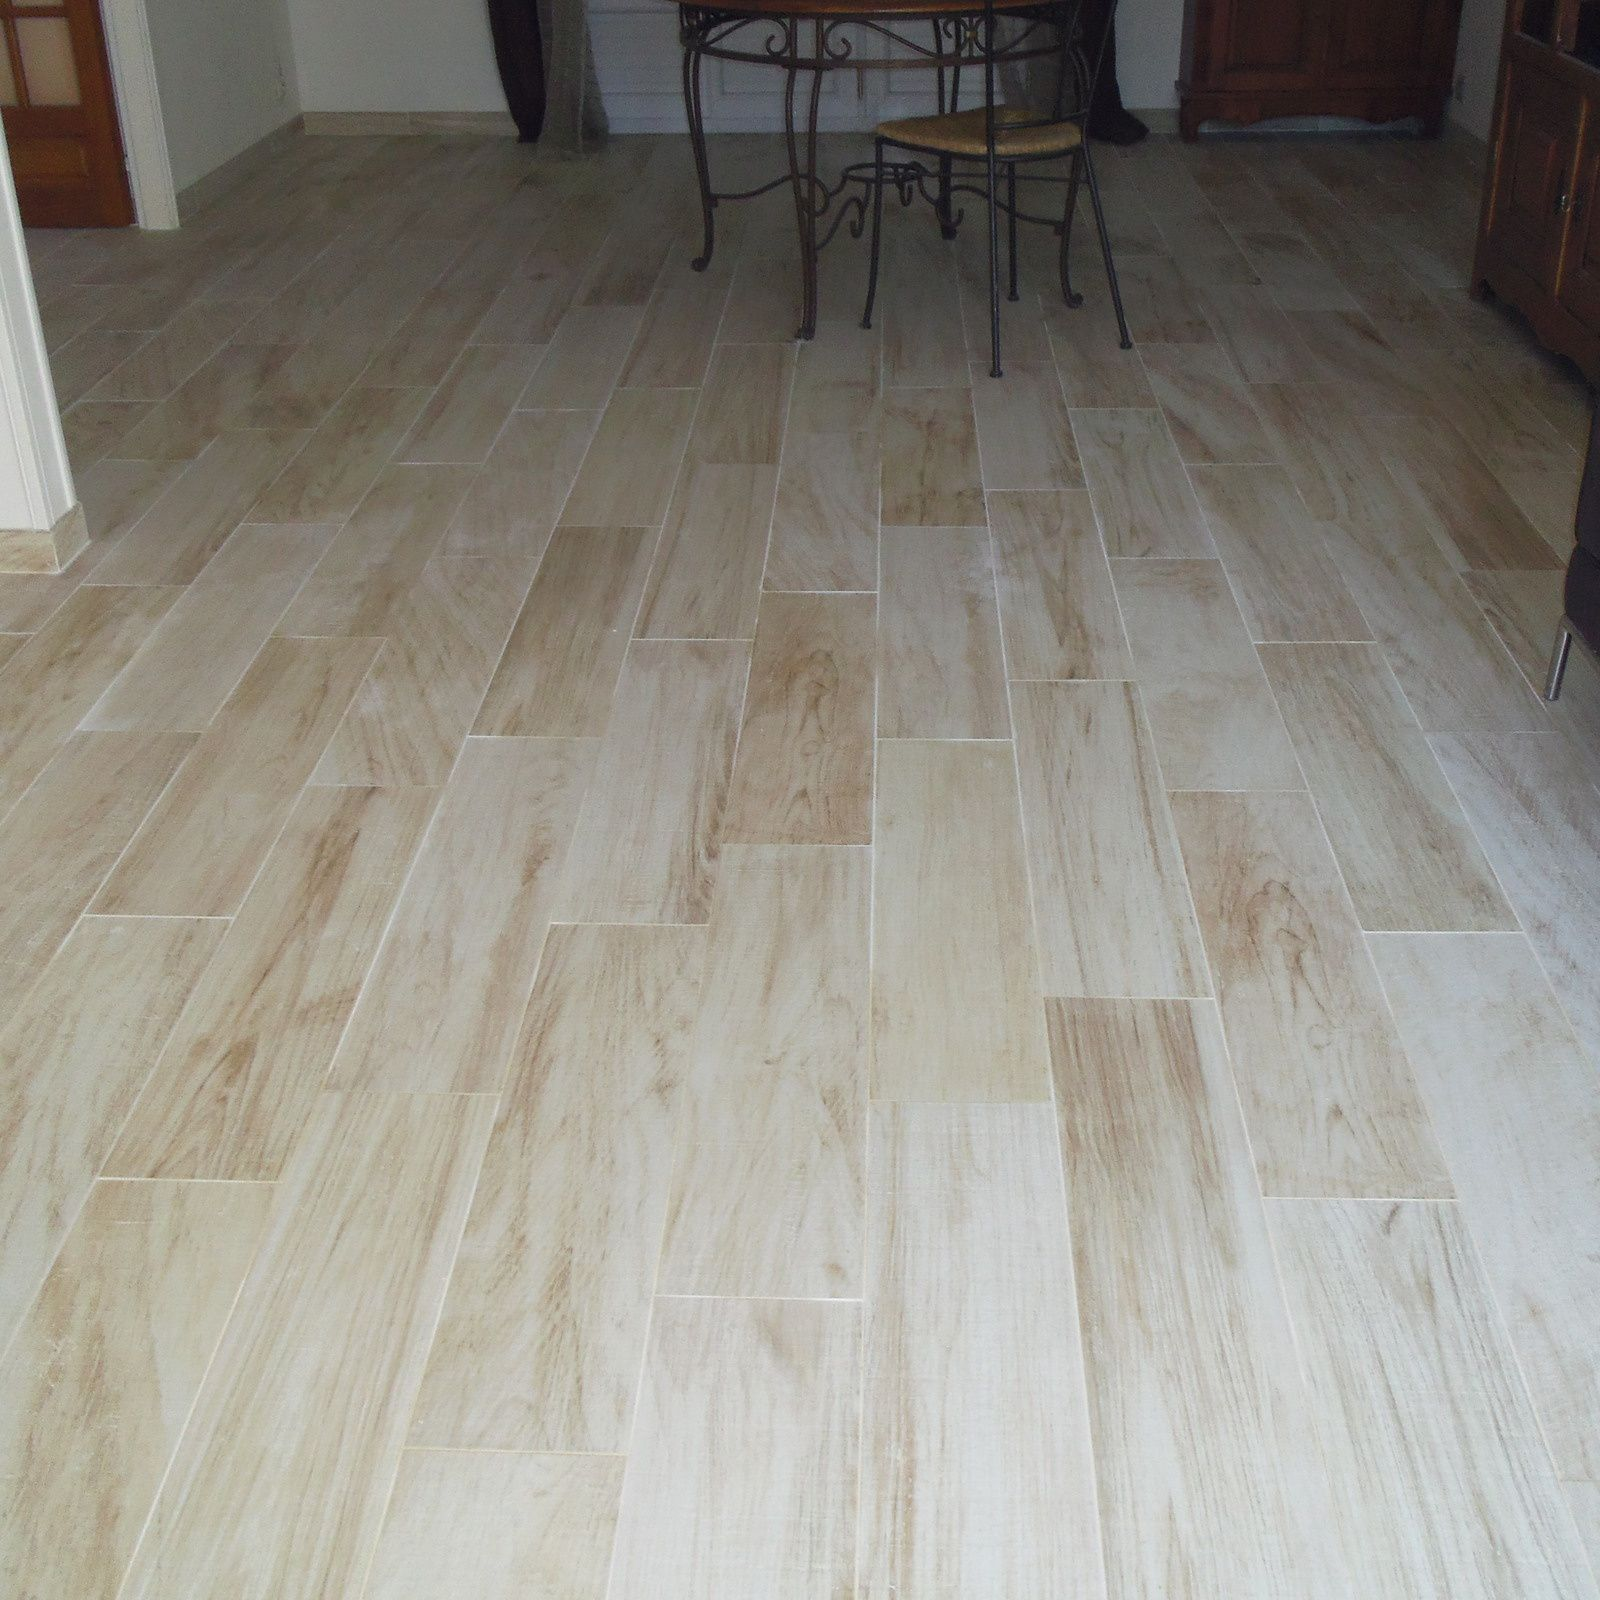 Pose de carrelage imitation parquet for Carrelage imitation parquet